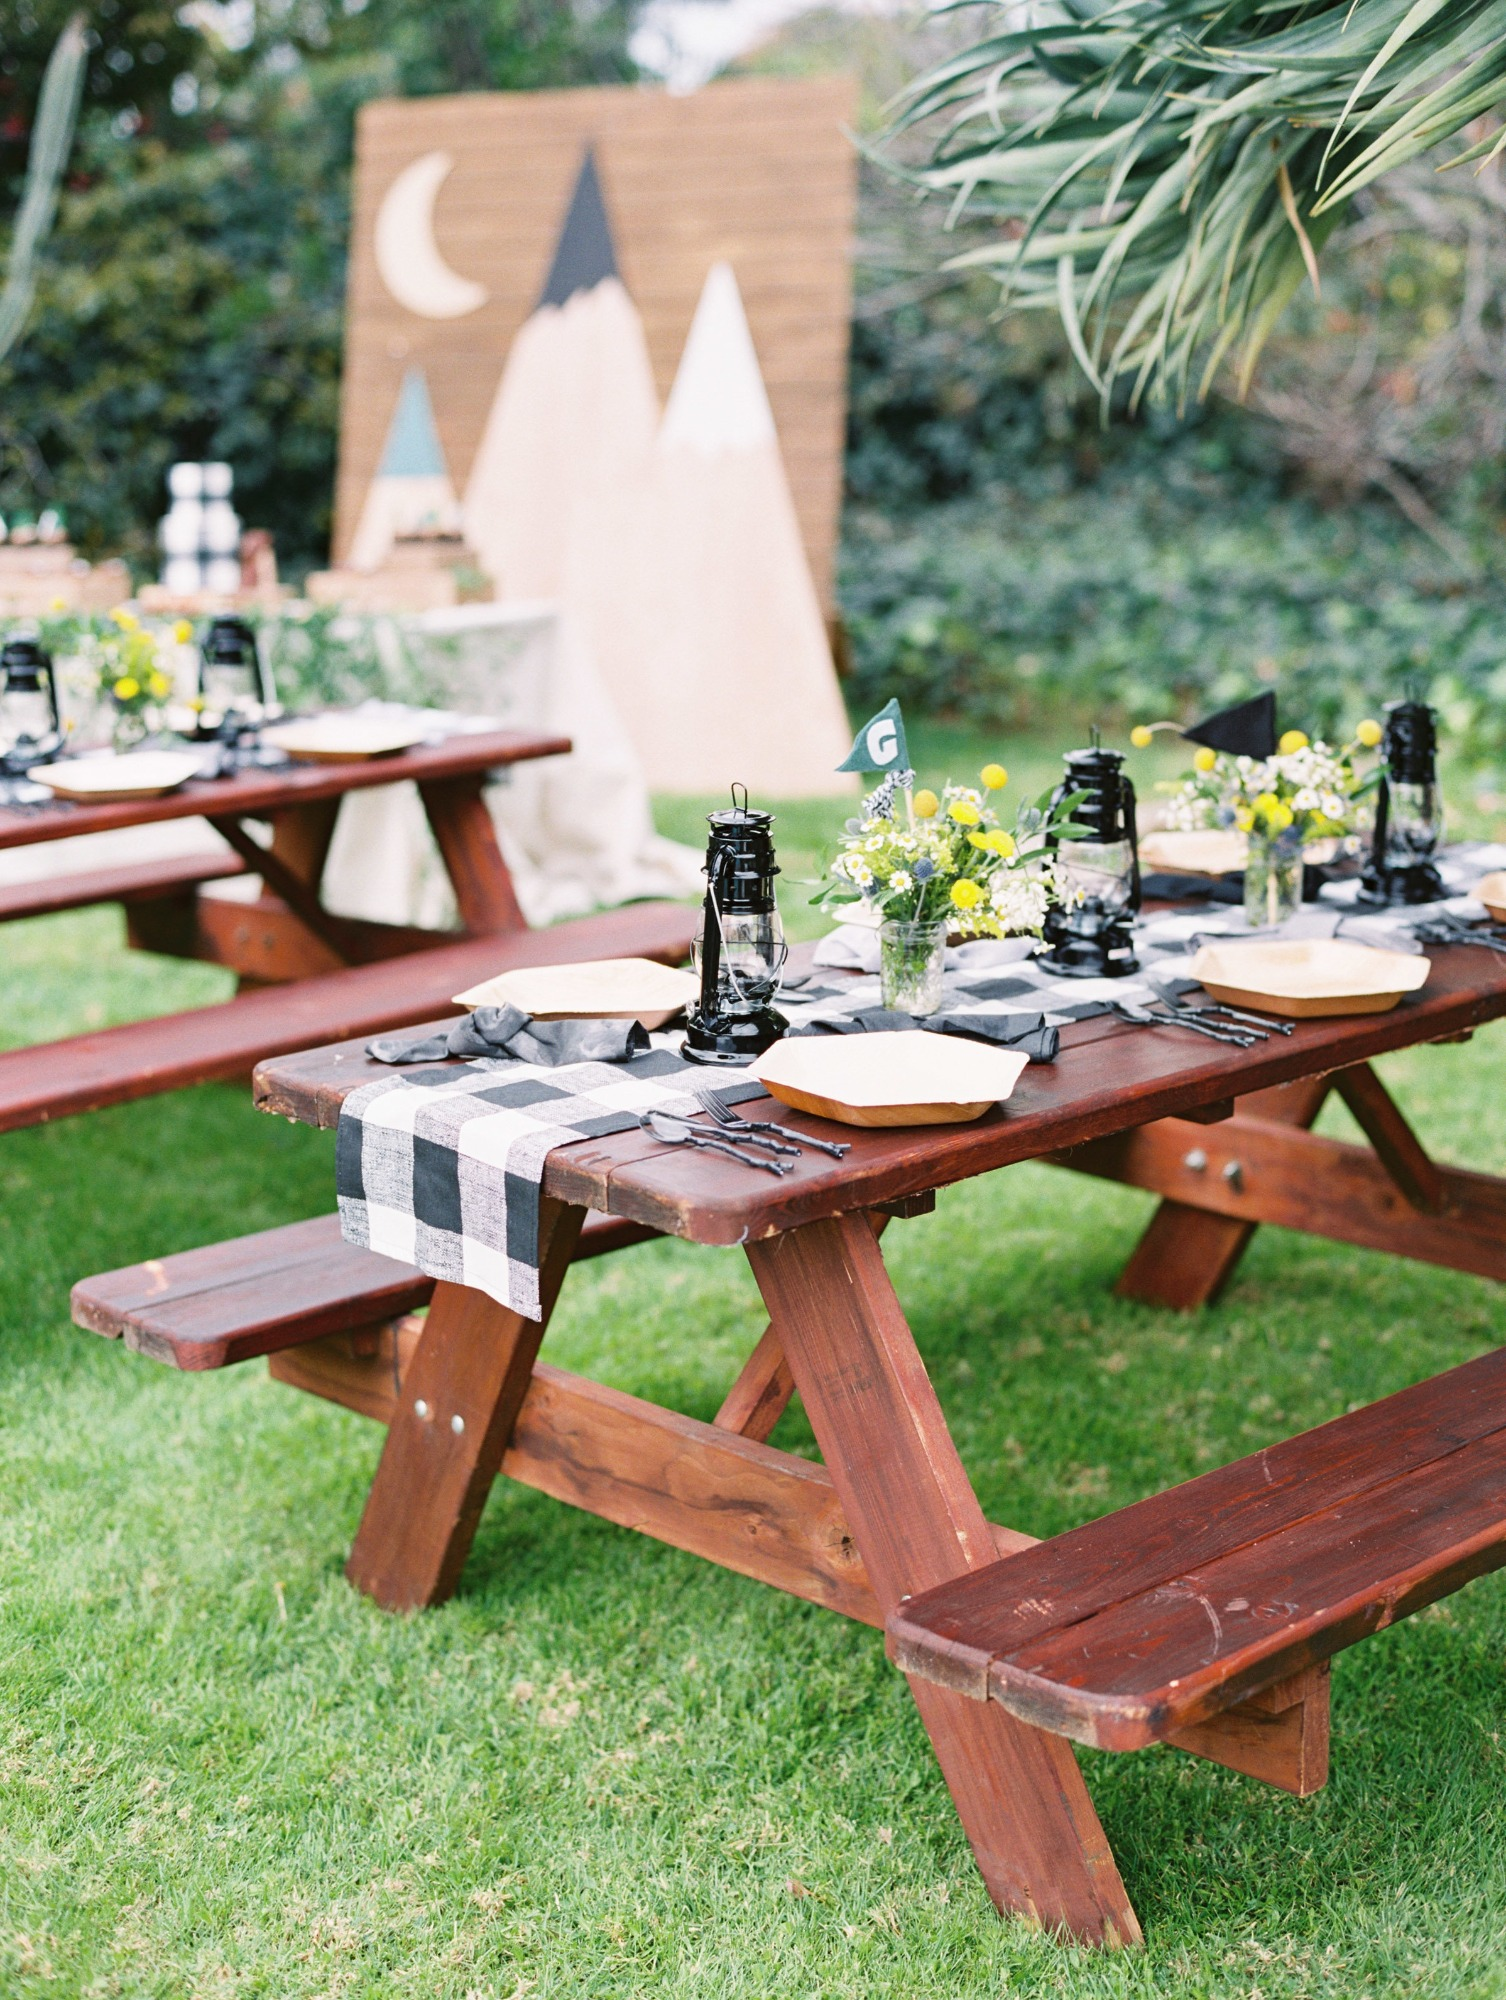 Picnic Benches from Classic Camping Birthday Party Styled by Deets & Things | Black Twine